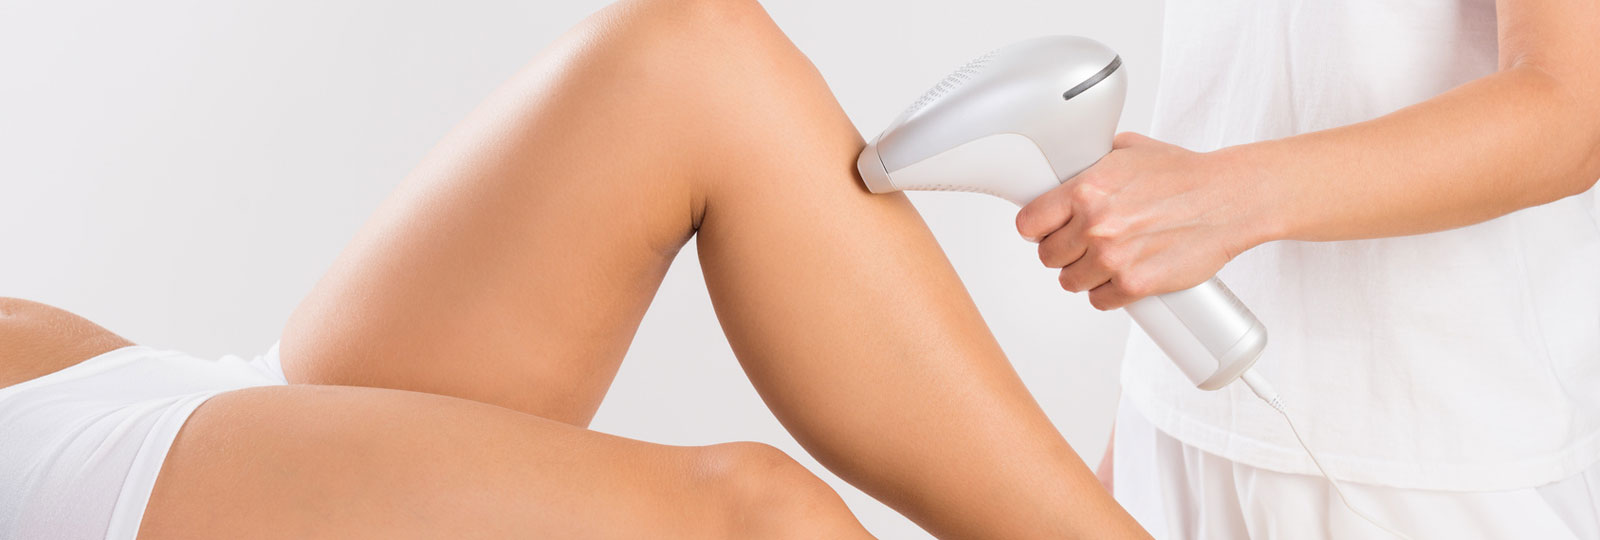 Unwanted Hair; Unwanted Area Of The Body, Get Laser Hair Removal At South Yarra